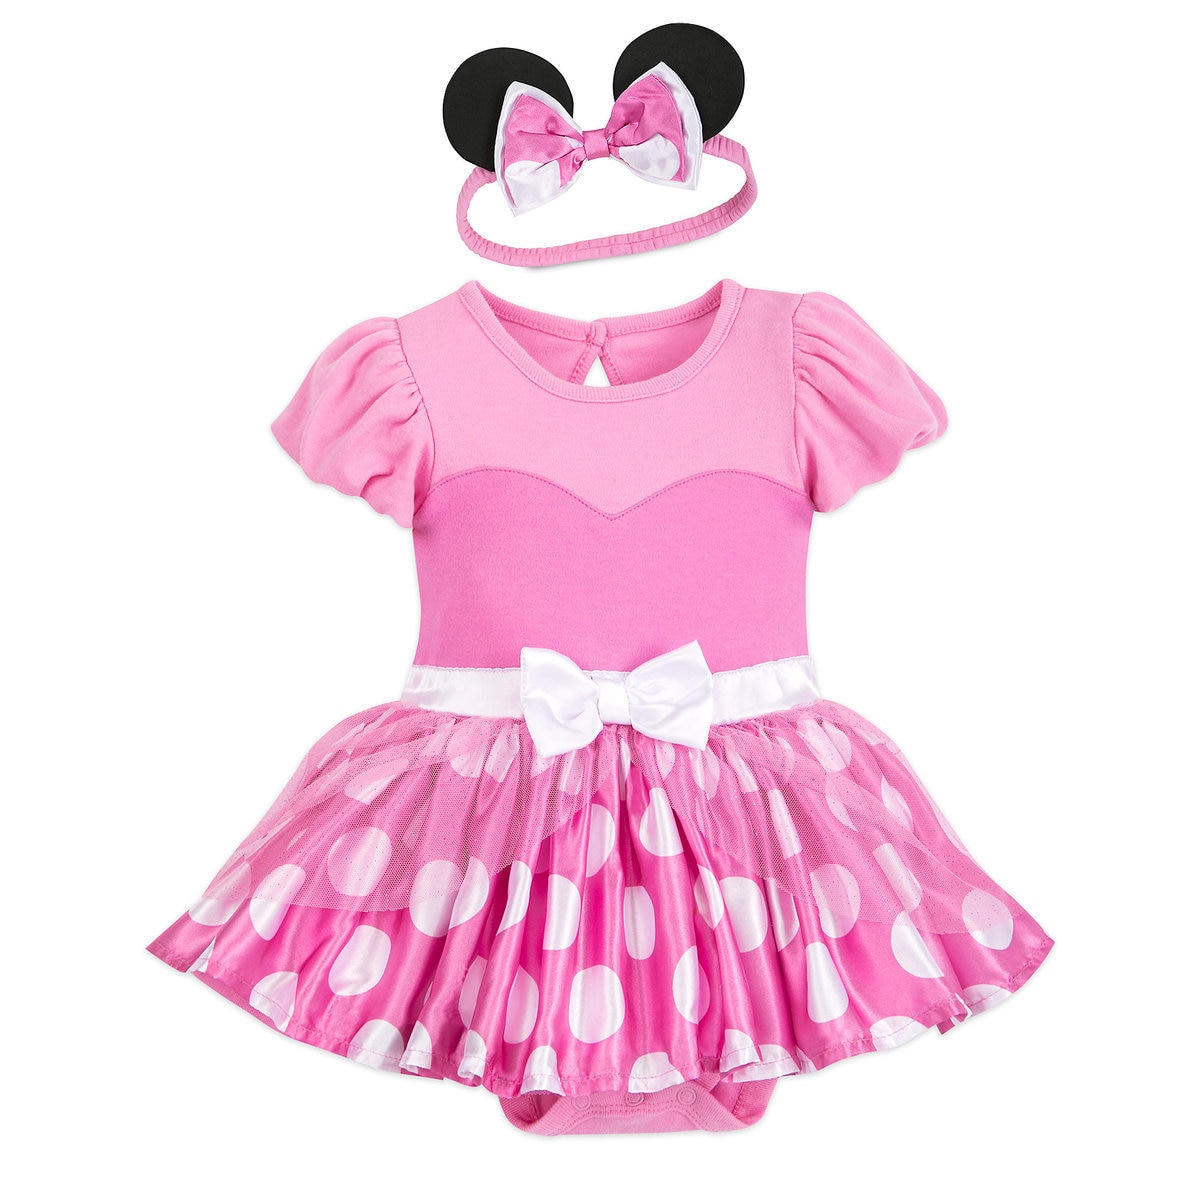 b220139980539 Product Image of Minnie Mouse Costume Bodysuit for Baby - Pink -  Personalized # 1